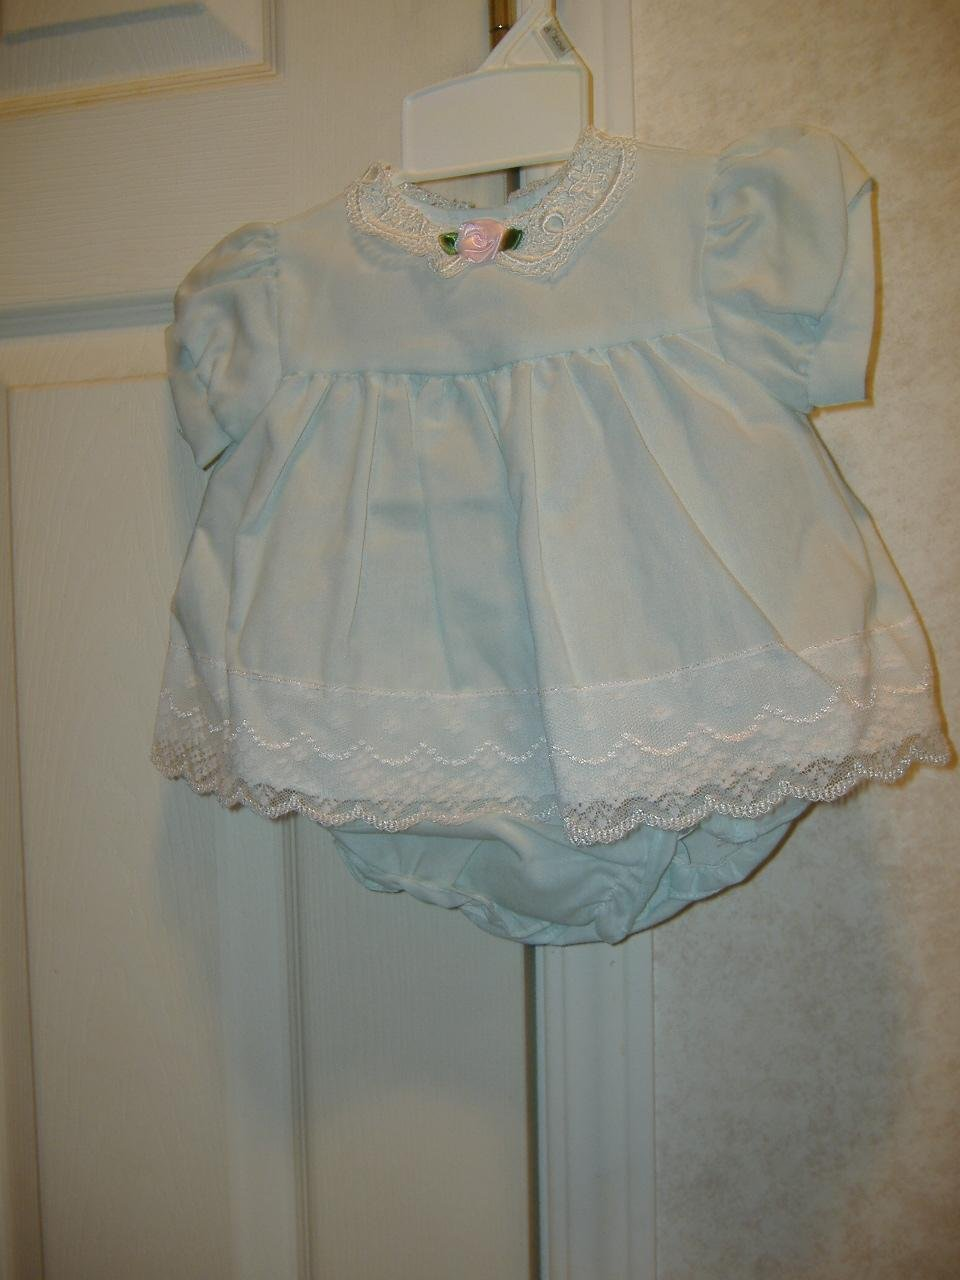 2 Piece Infant Girl Set By Bright Future   Size 0 - 3 Months